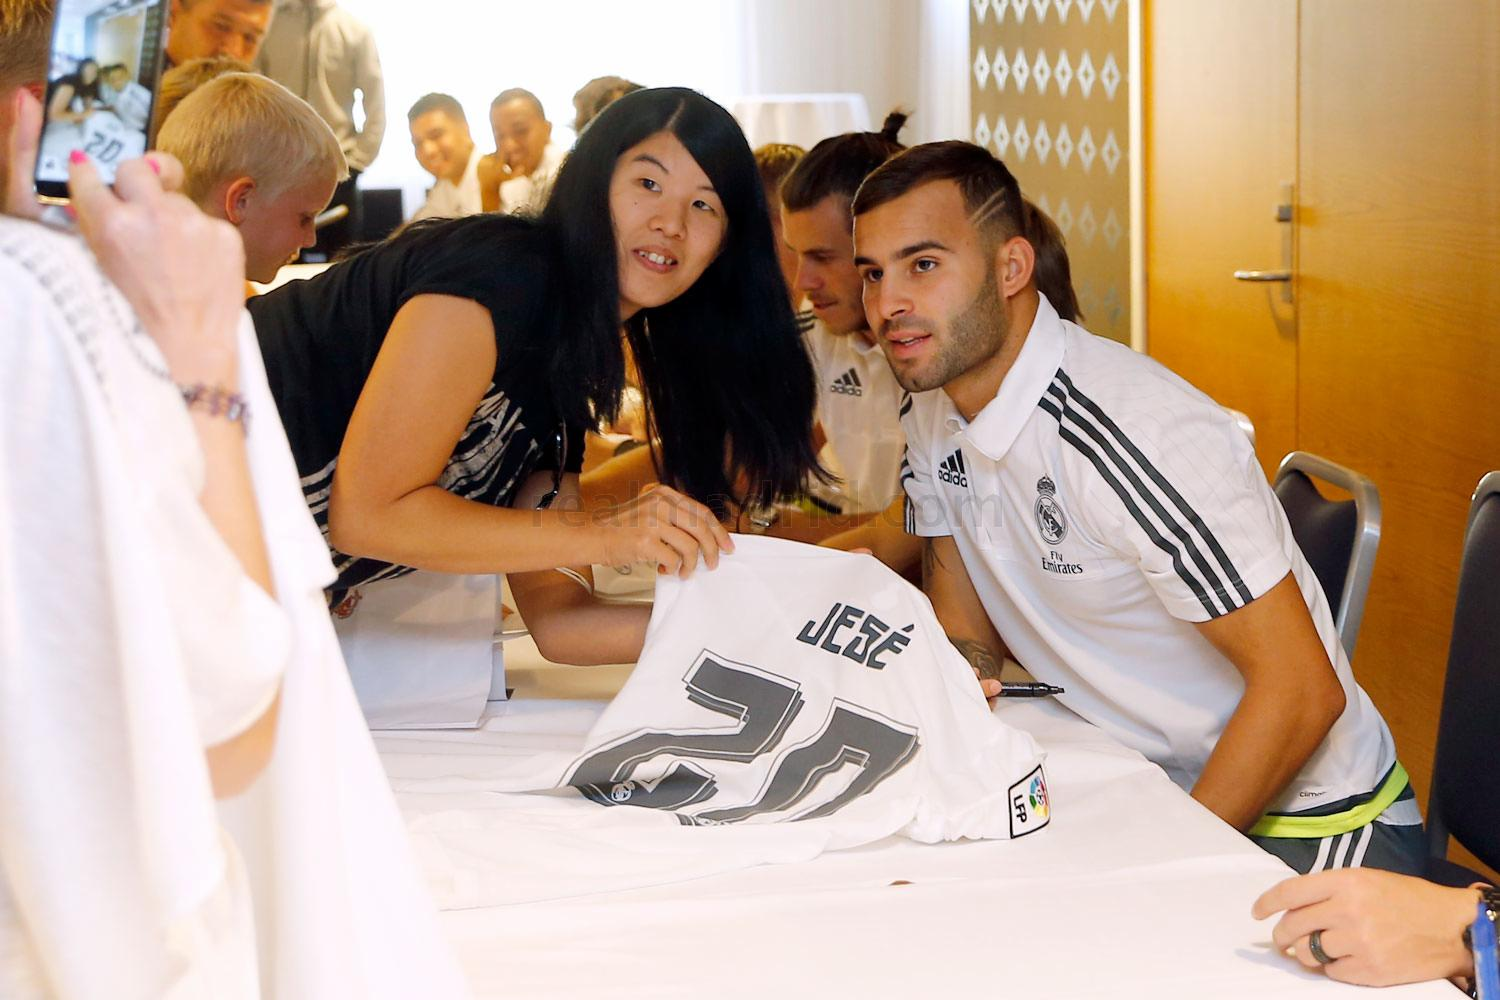 Real Madrid - Meet&Greet en Oslo - 08-08-2015